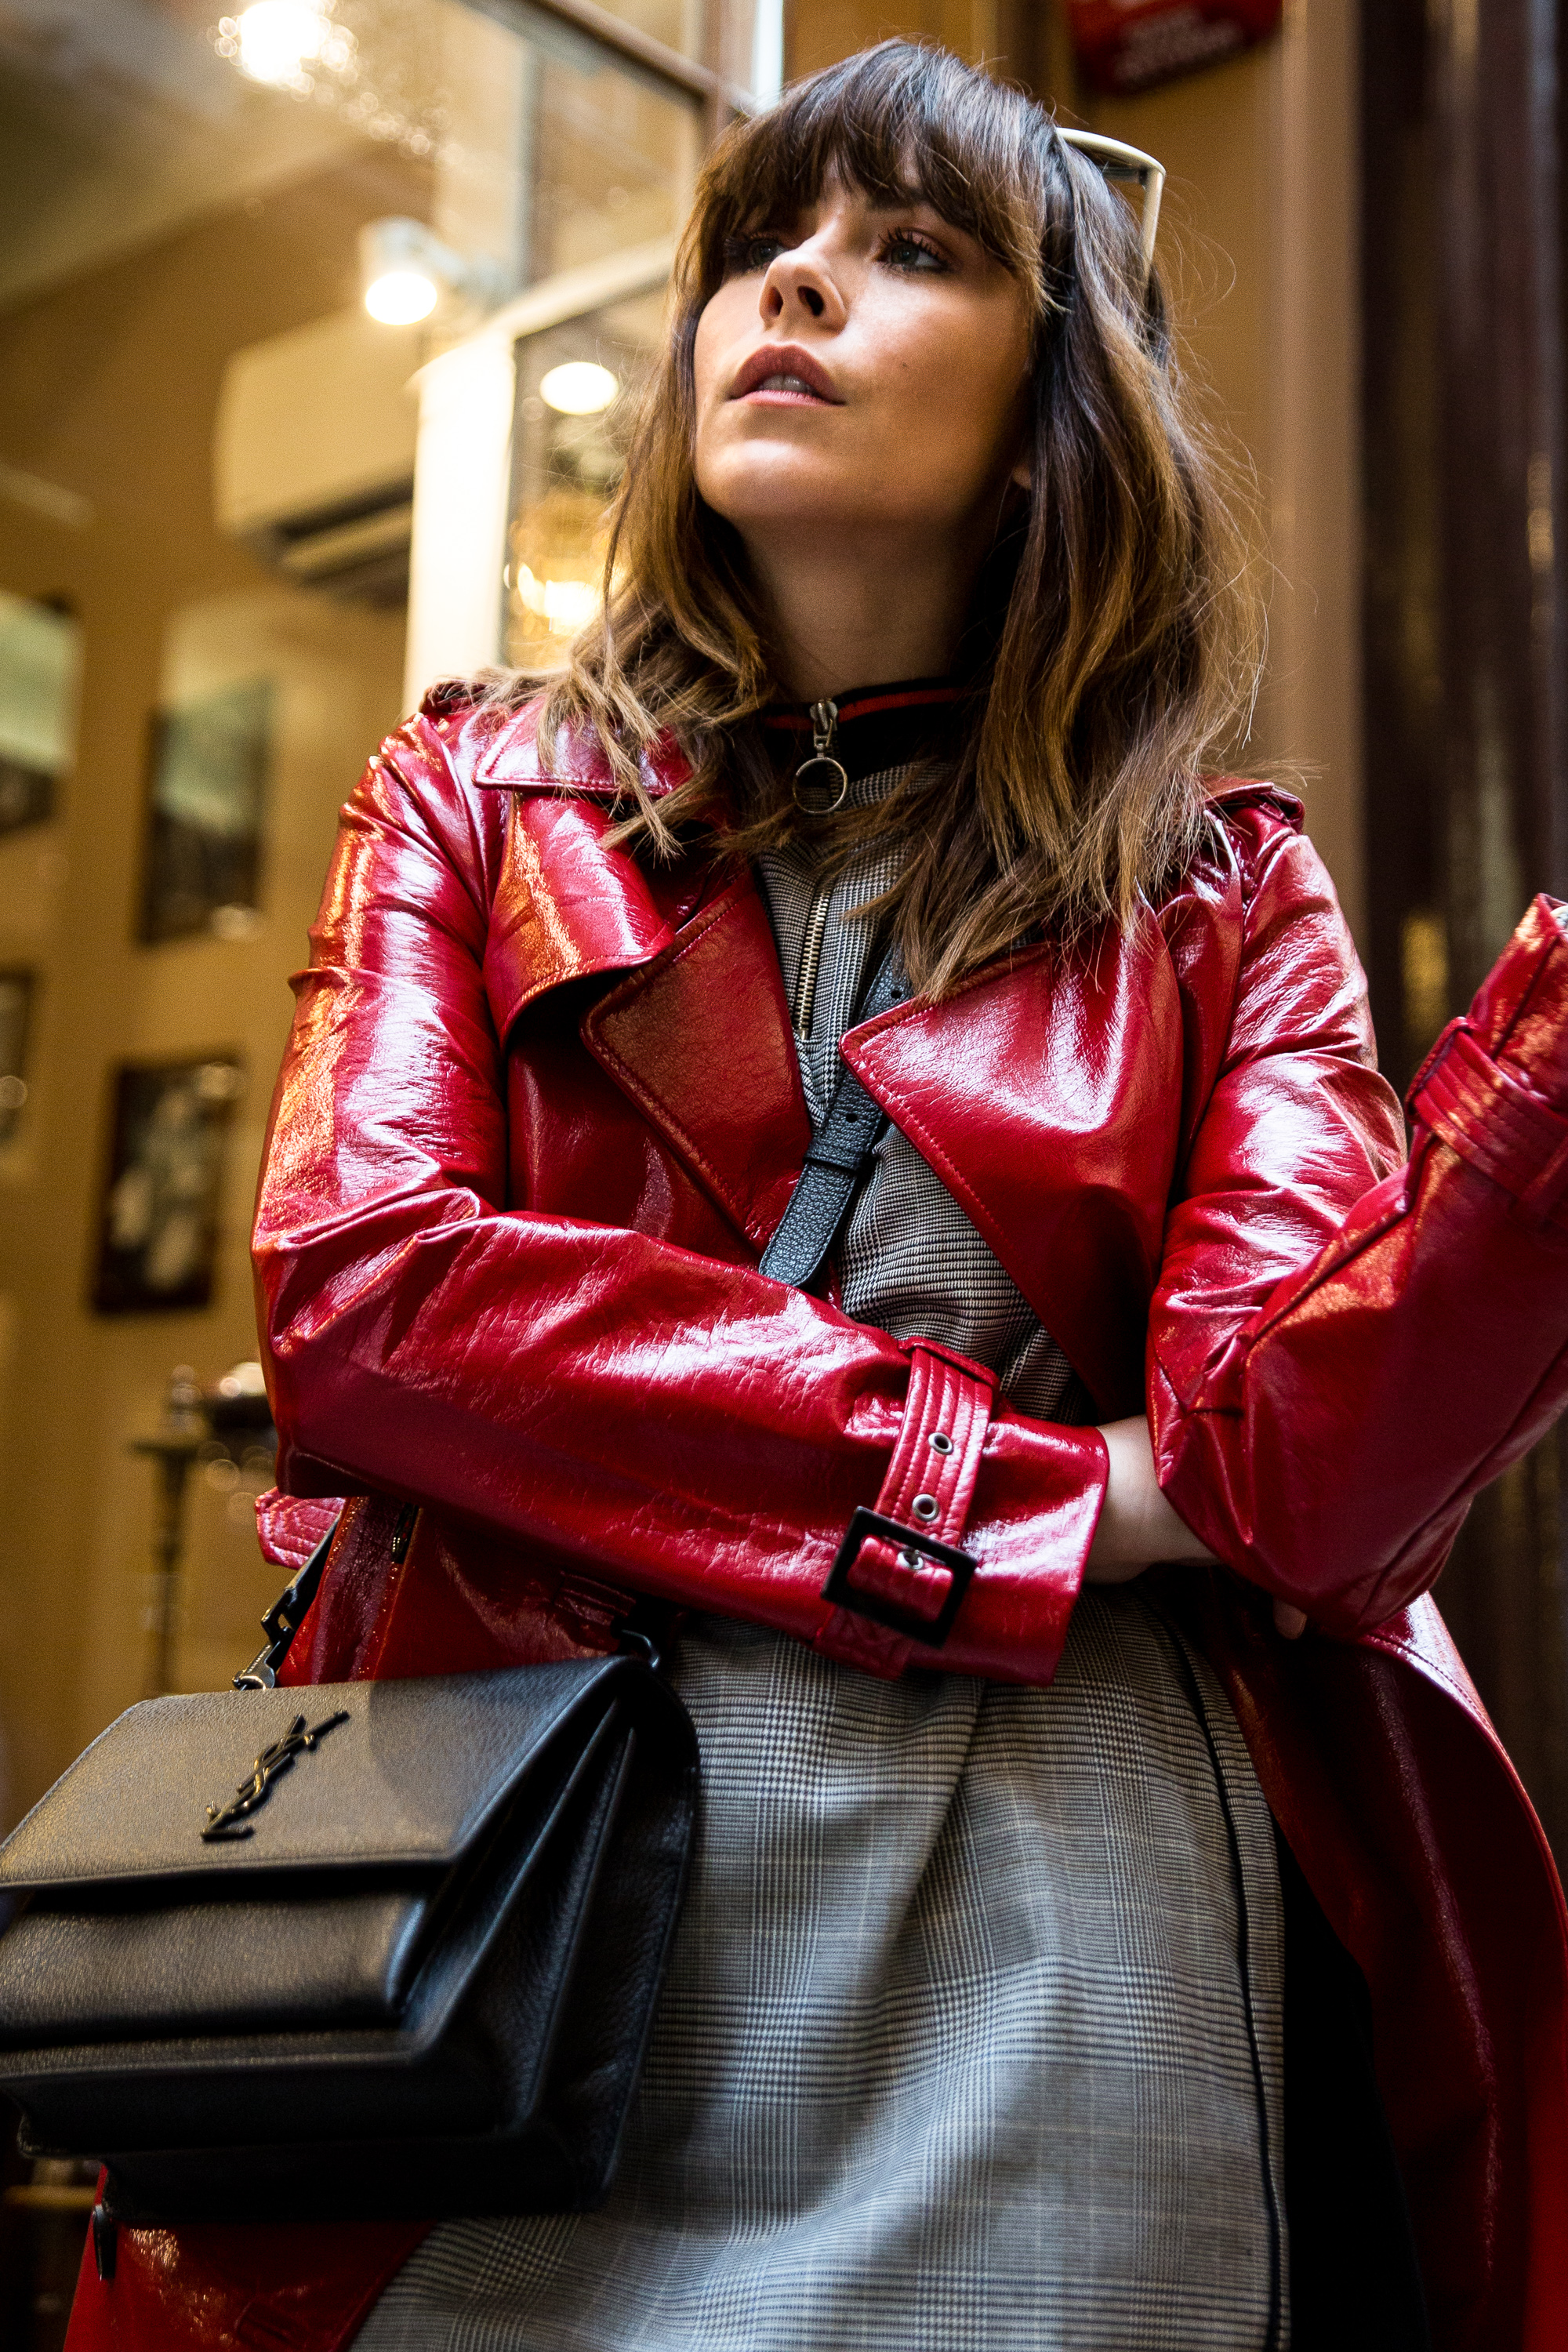 HOW TO WEAR RED PVC